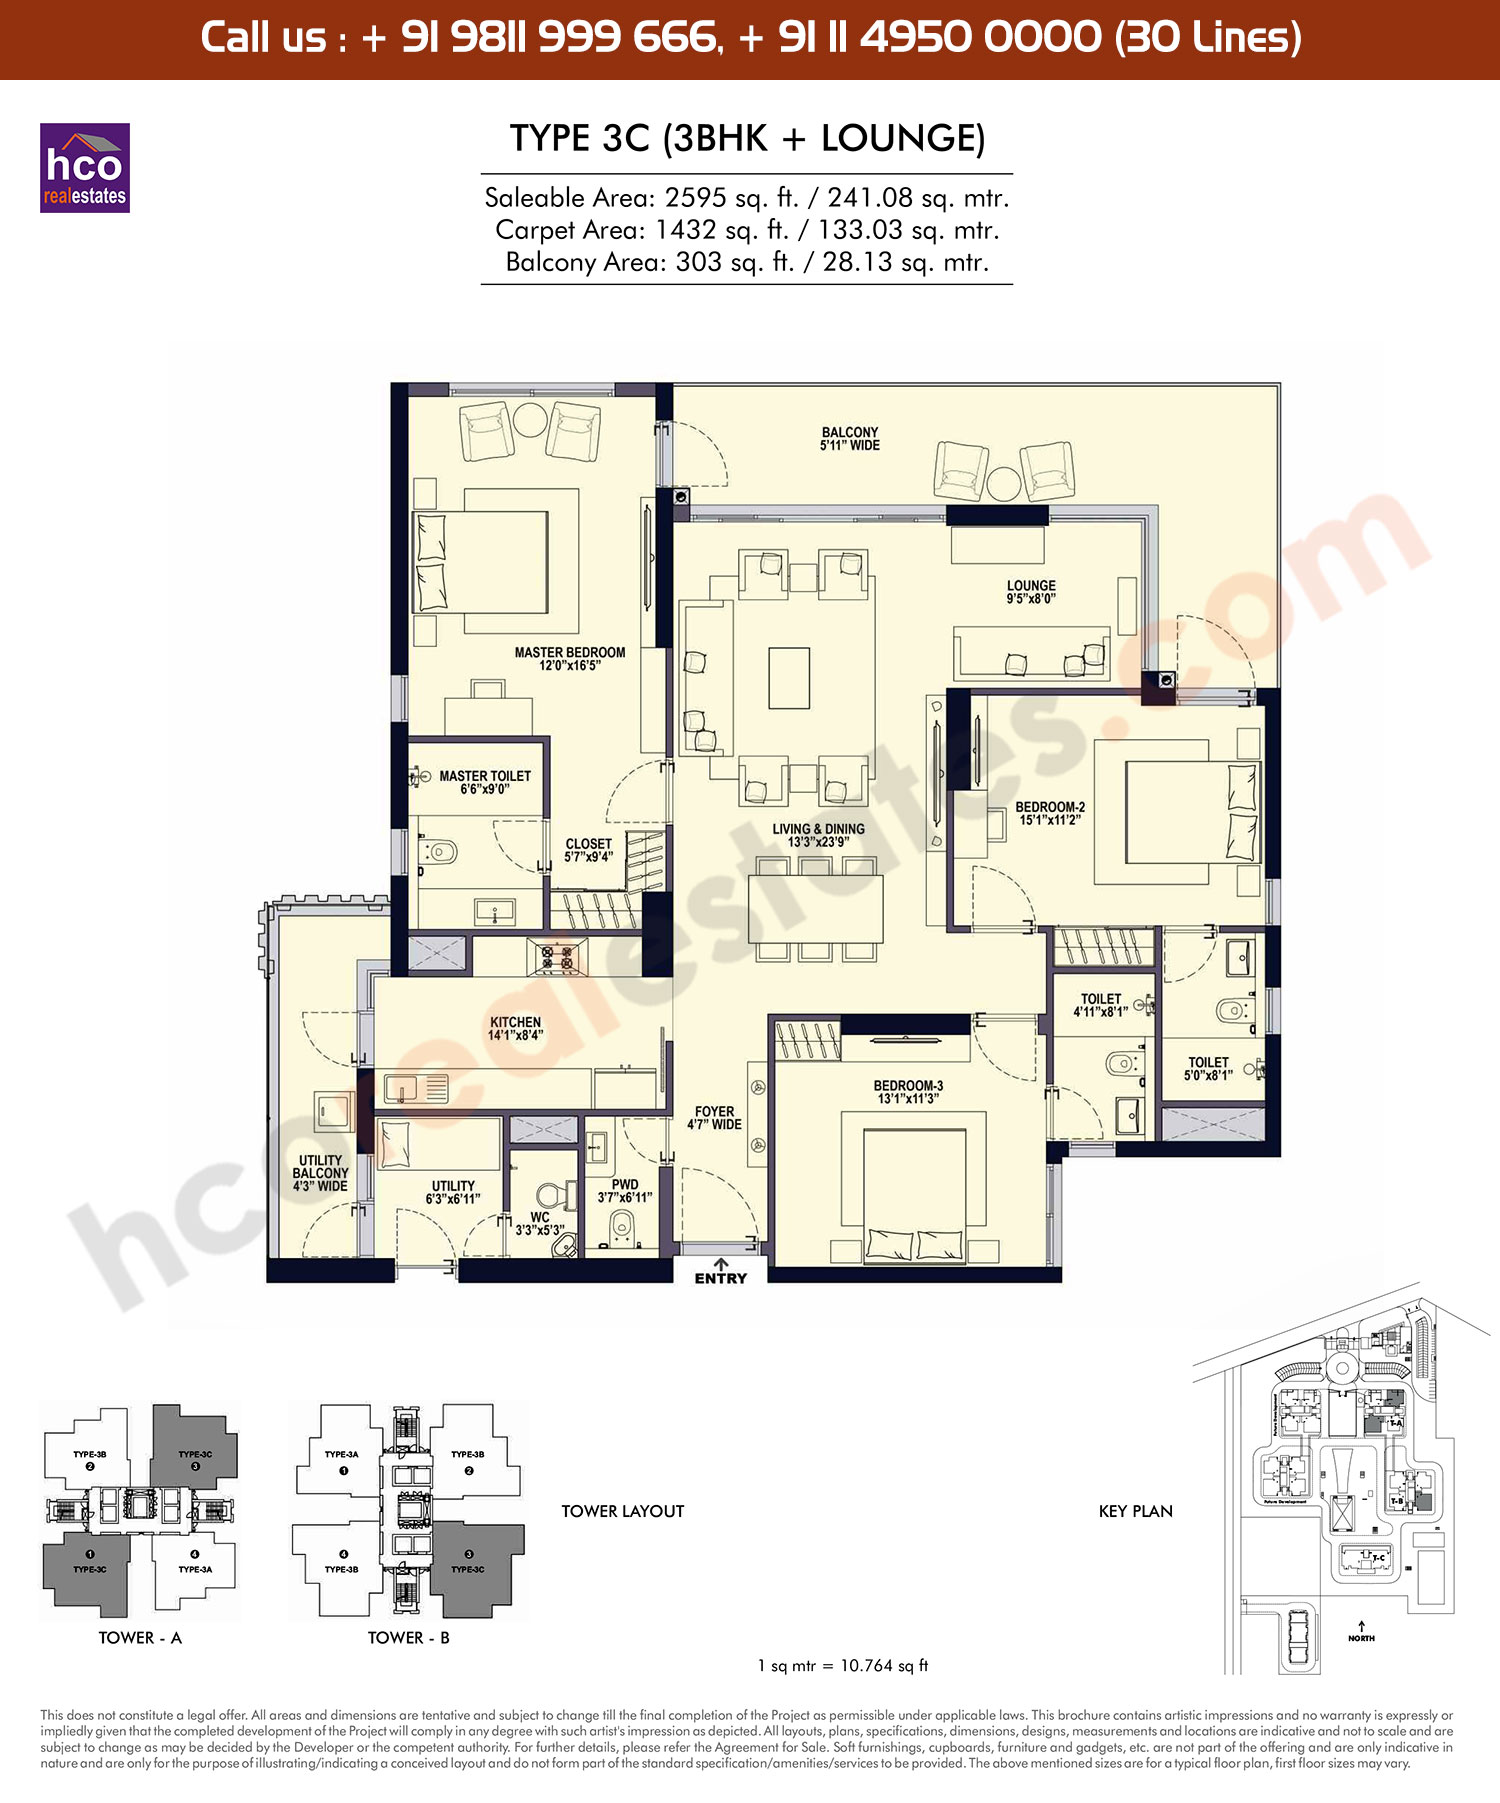 3 BHK + Lounge, Type -3C: 2595 Sq. Ft.